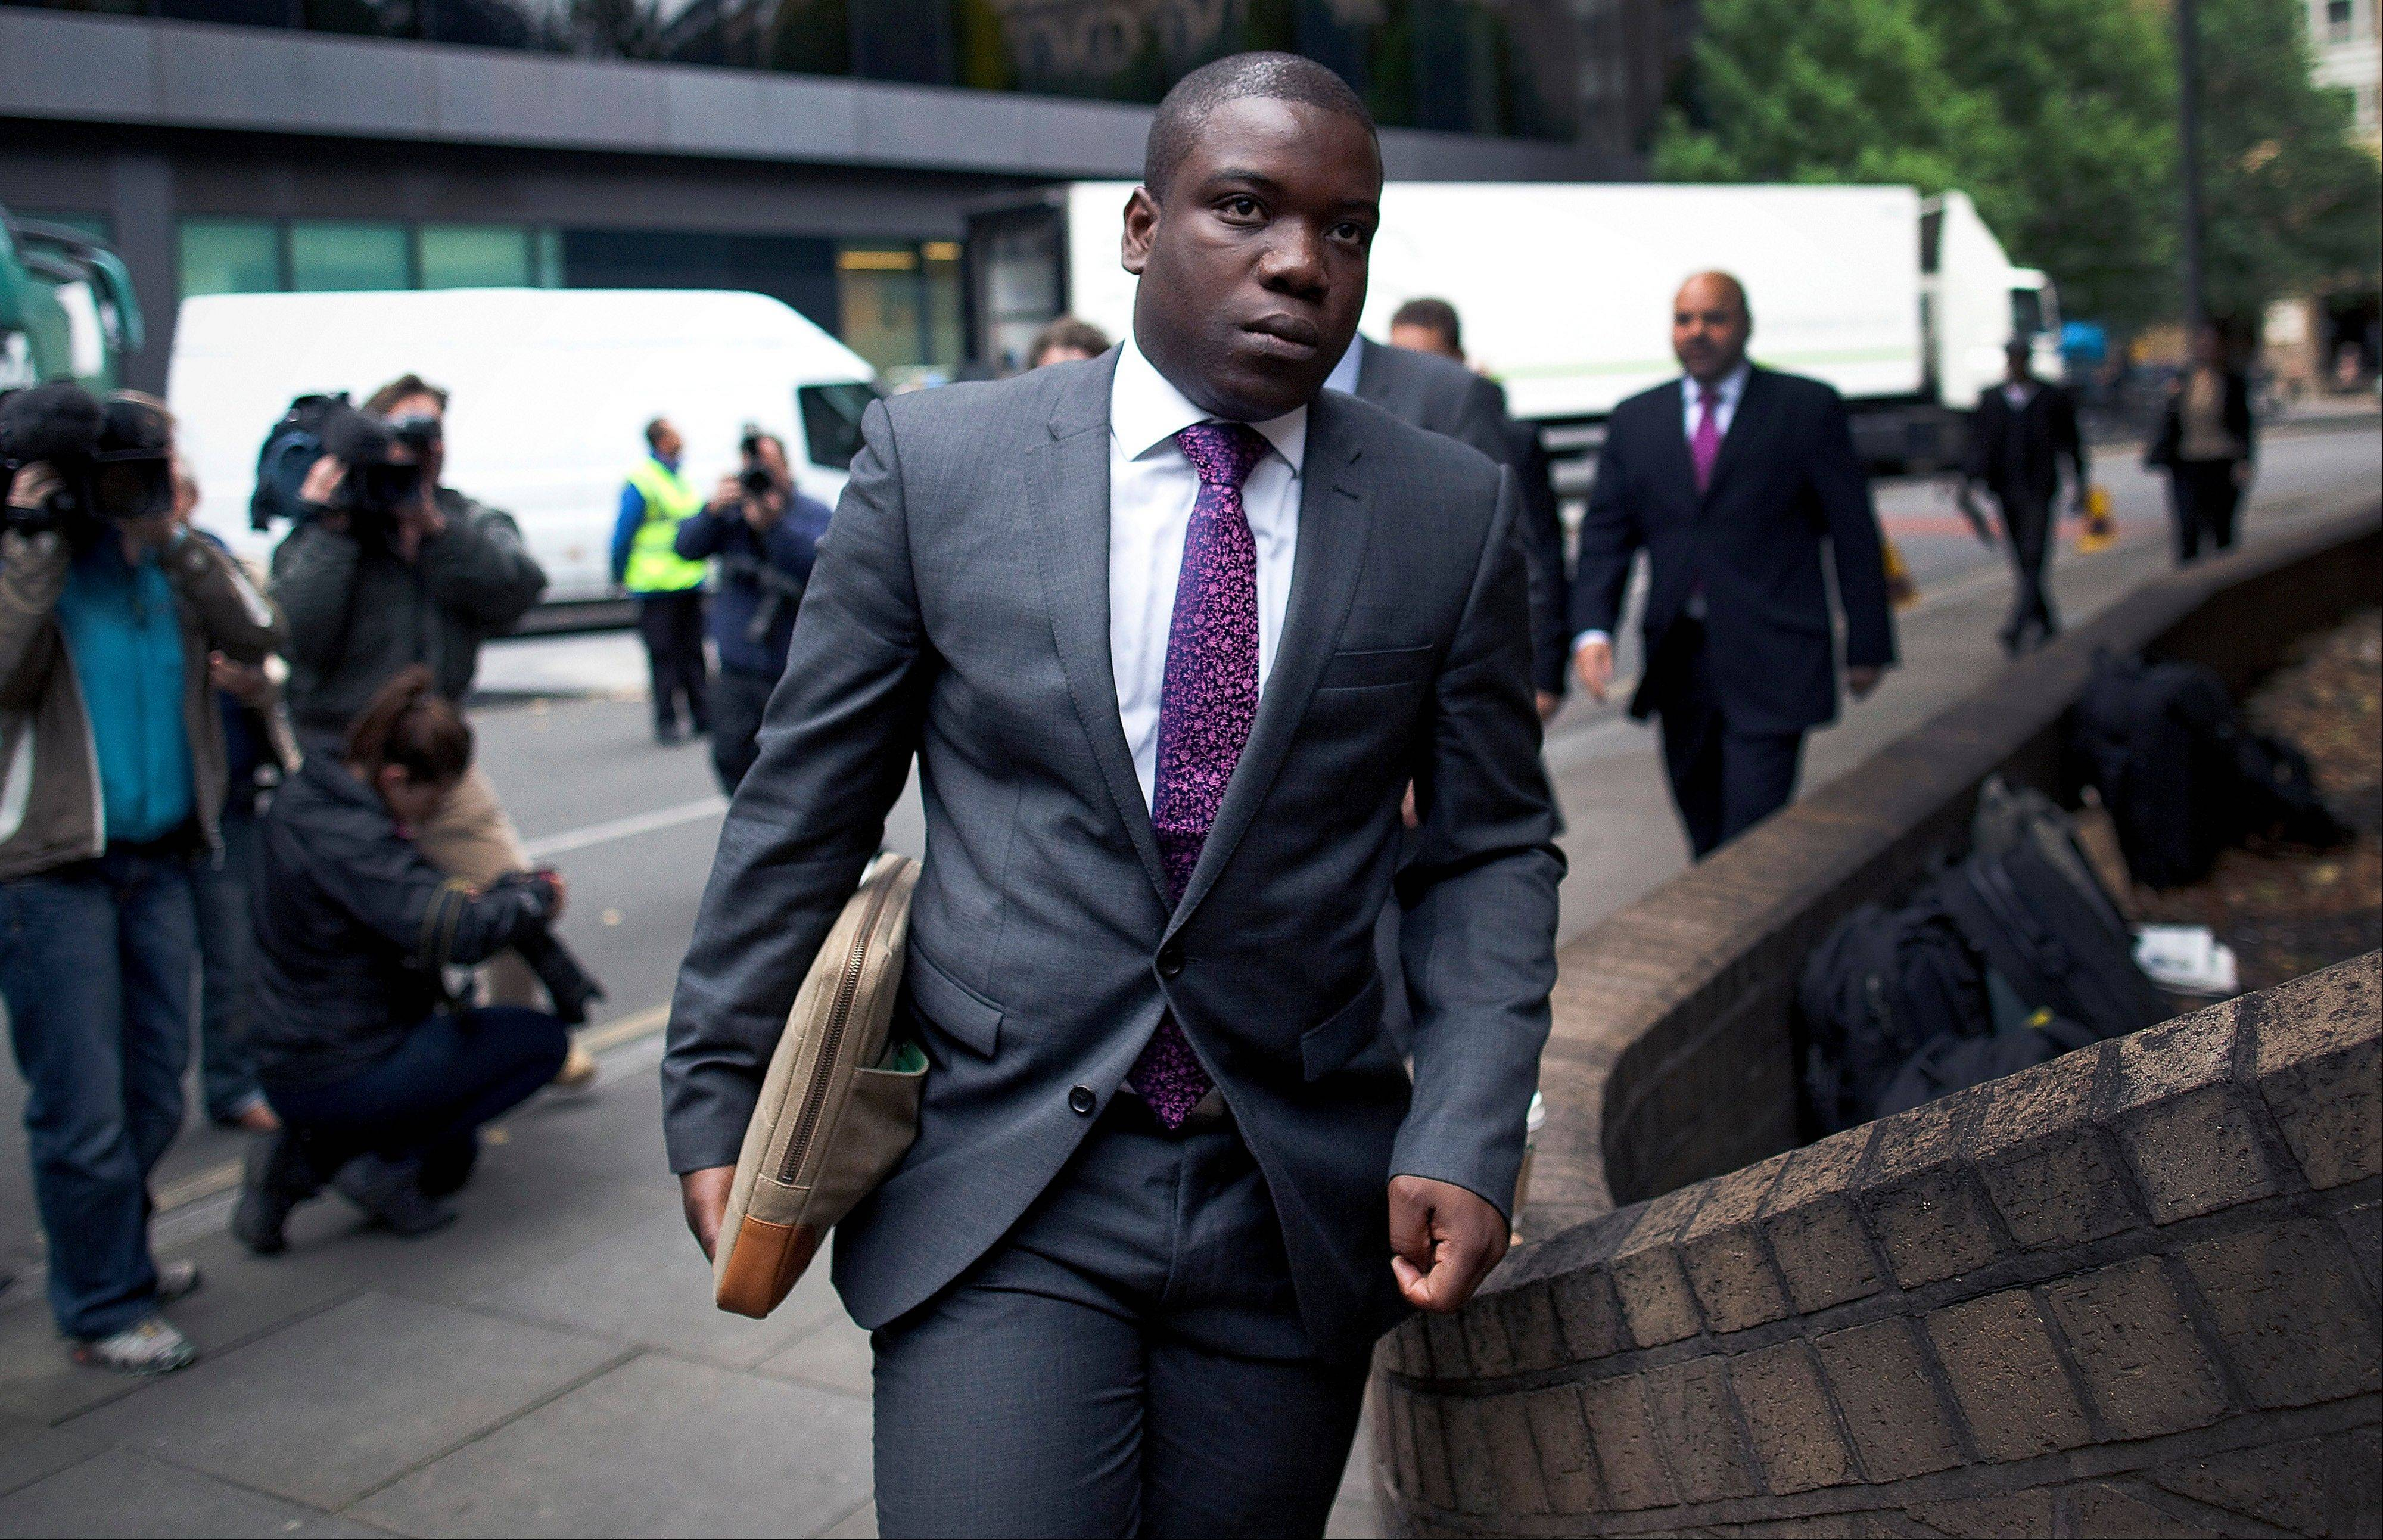 Kweku Adoboli, a former trader at UBS AG, arrives at Southwark Crown Court in London, U.K., on Friday, Sept. 14, 2012. Adoboli is charged with falsifying records on exchange-traded fund transactions and other documents needed for accounting purposes as early as October 2008, according to his indictment.